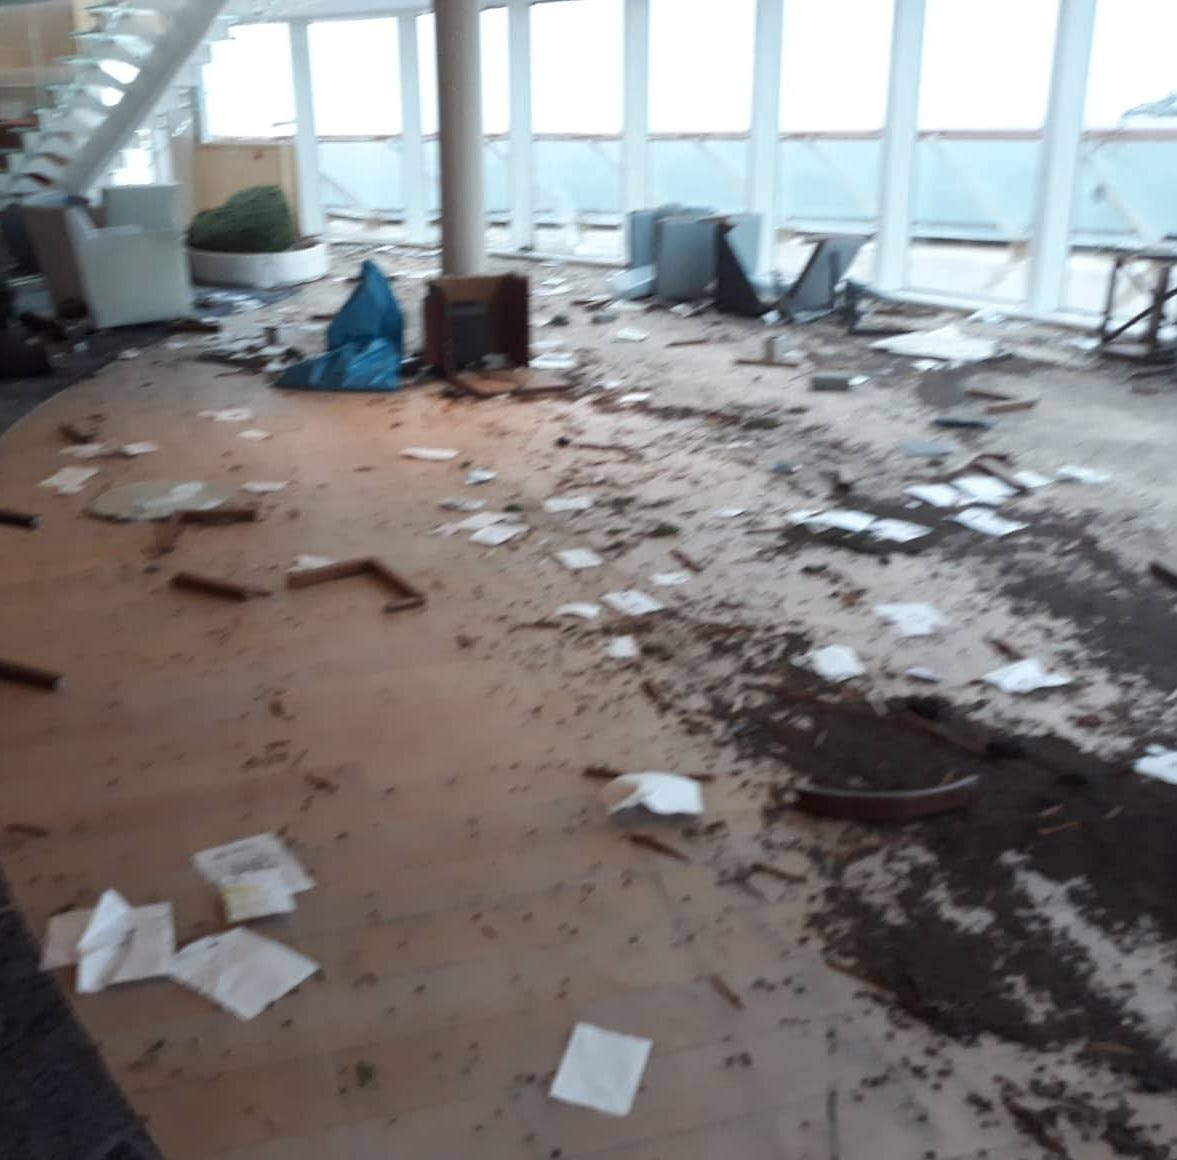 Exclusive: Crew member recounts what happened on stranded, storm-tossed Viking Sky cruise ship